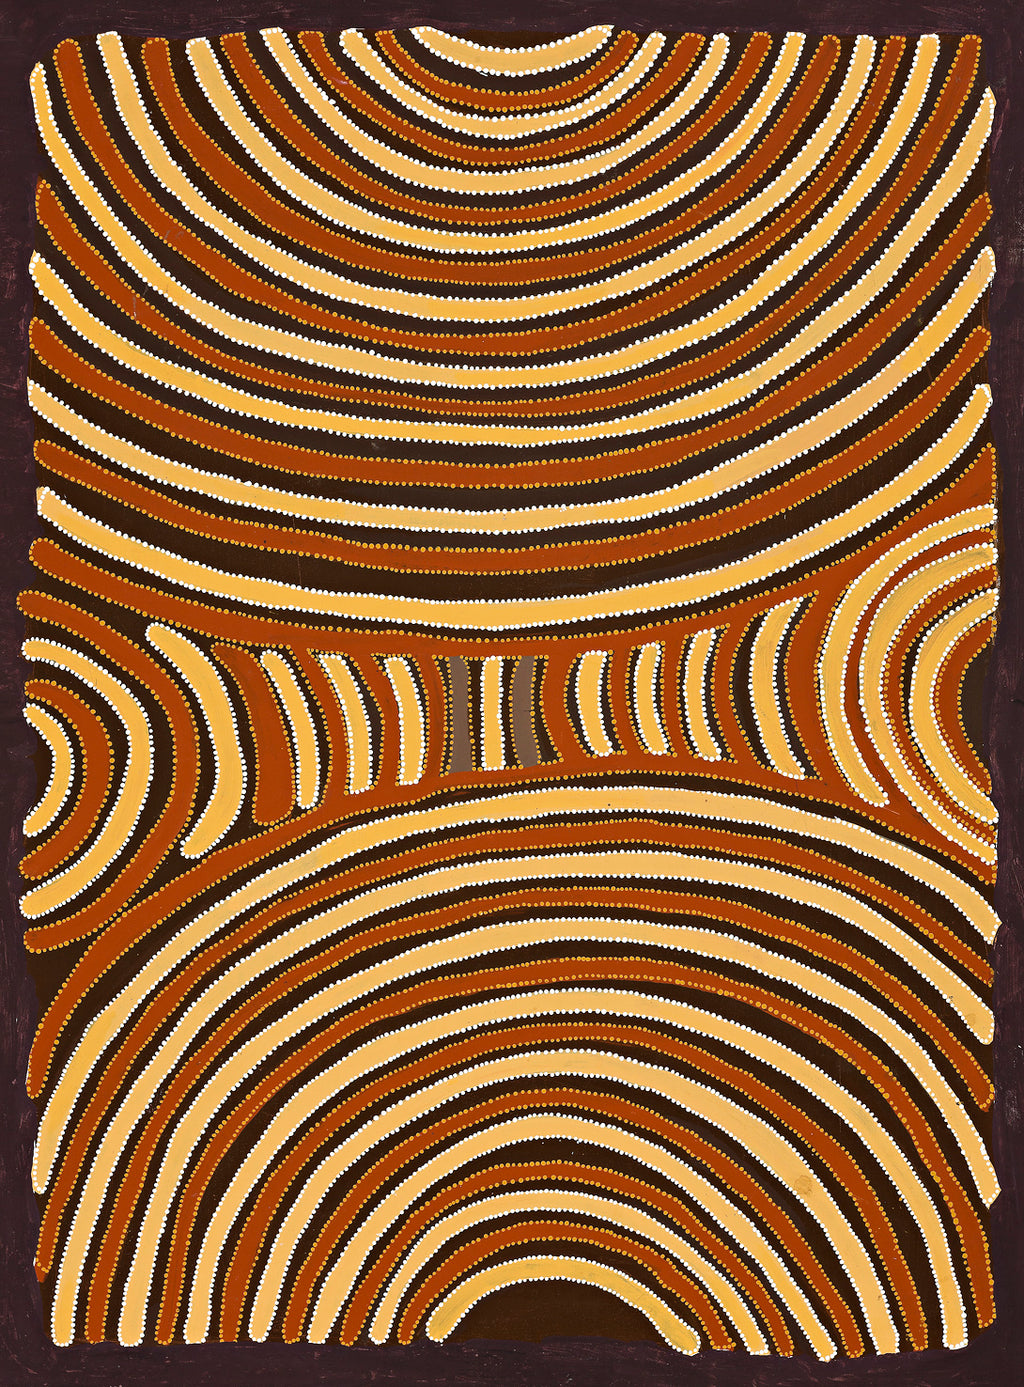 Kathleen Petyarre, 'Body Paint', 1994, 94A039, 90x125cm - Delmore Gallery